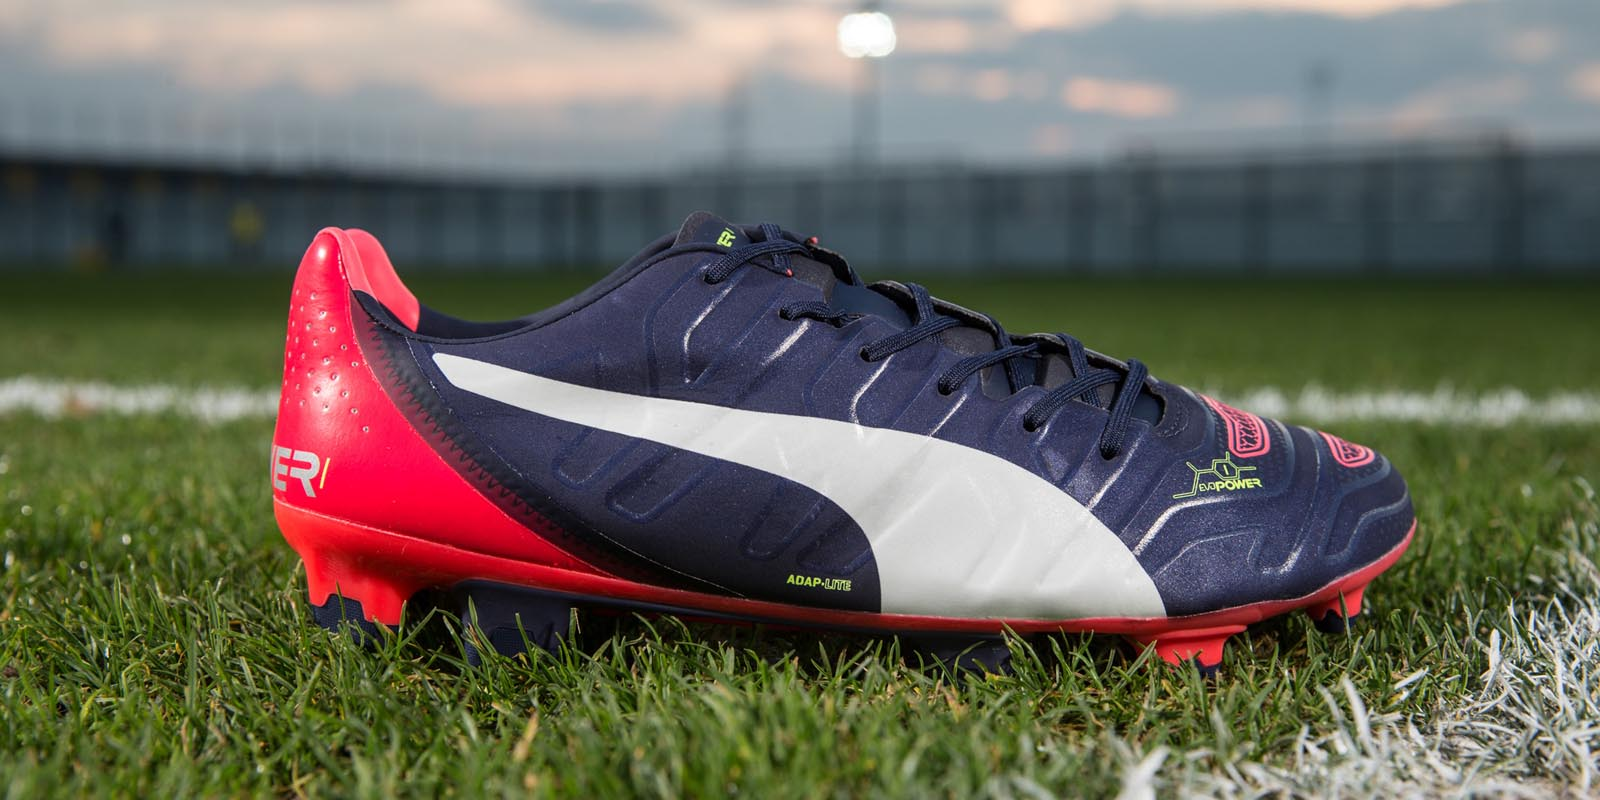 Next Gen Puma Evopower 2015 Boots Released Footy Headlines